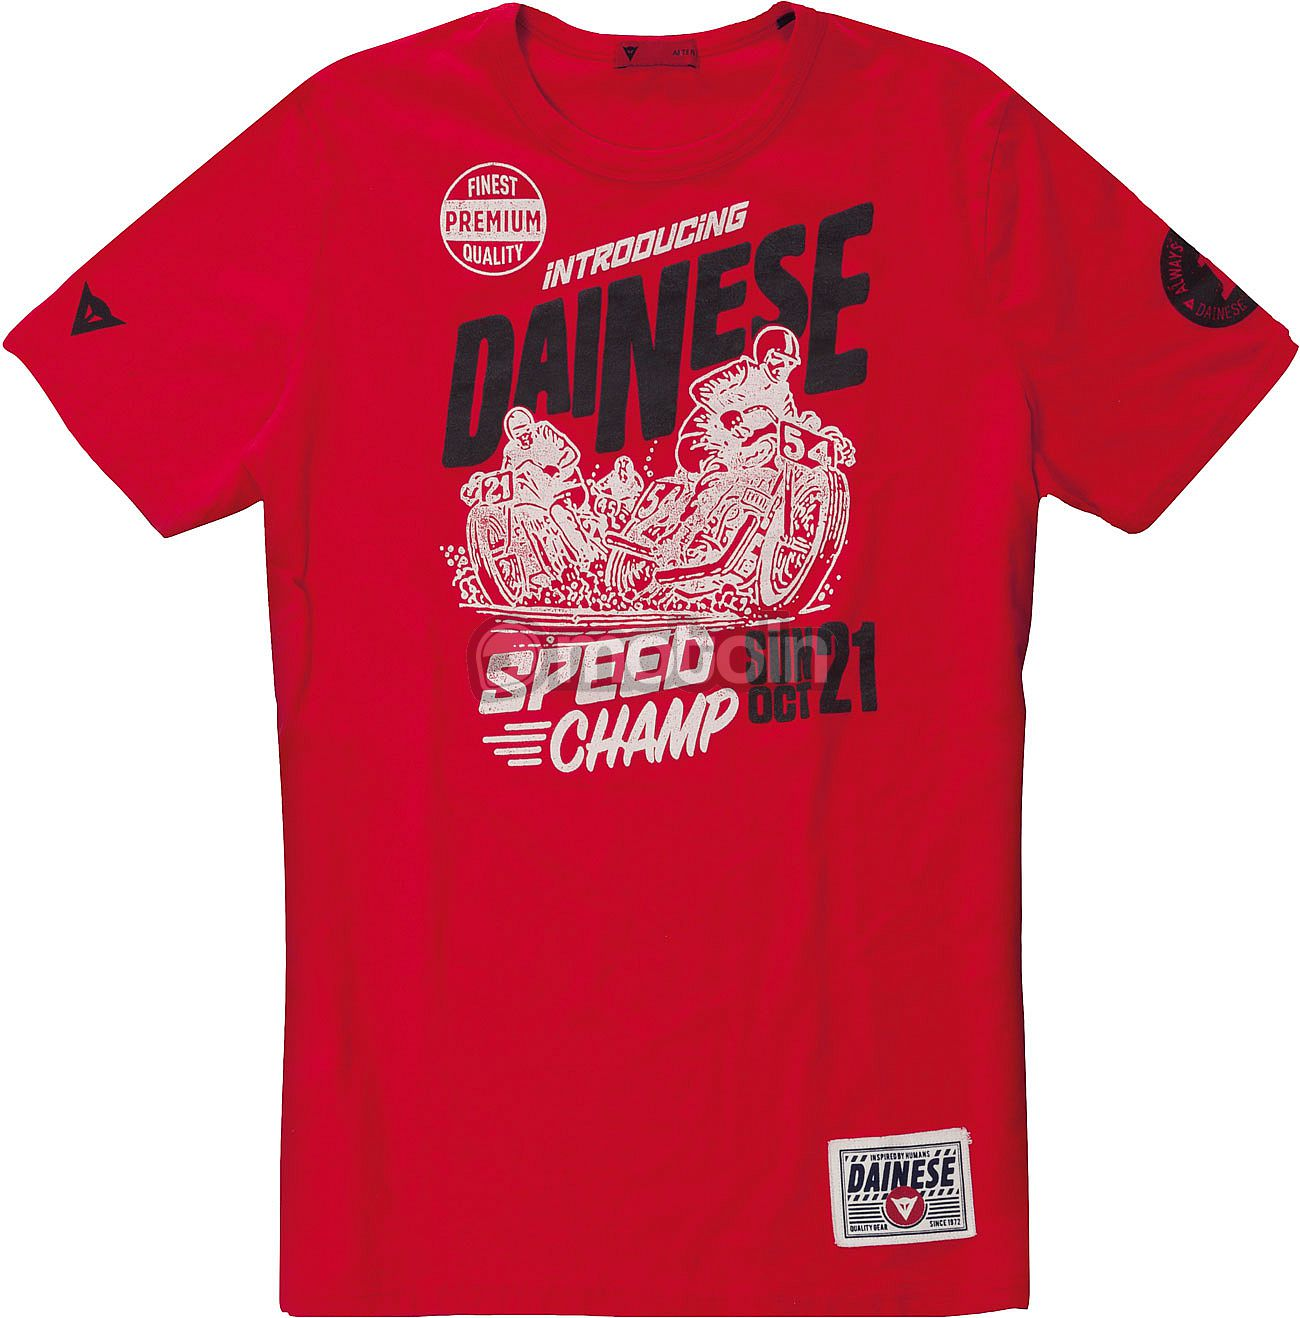 dainese speed champ t shirt. Black Bedroom Furniture Sets. Home Design Ideas